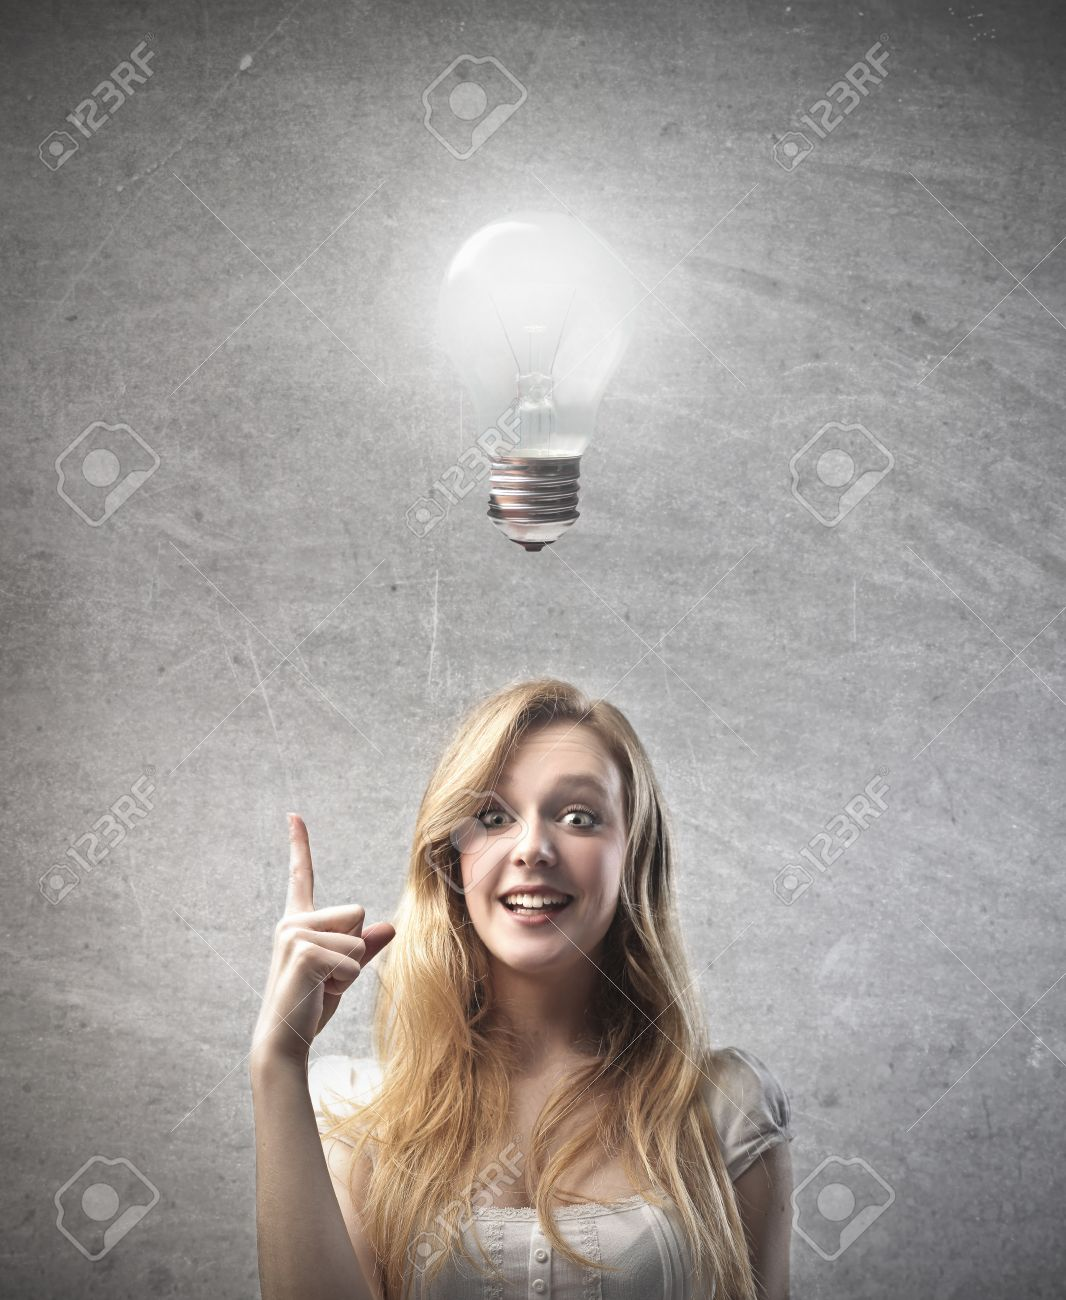 Smiling Young Woman Having An Idea With Light Bulb Over Her Head ... for Idea Light Bulb Over Head  303mzq